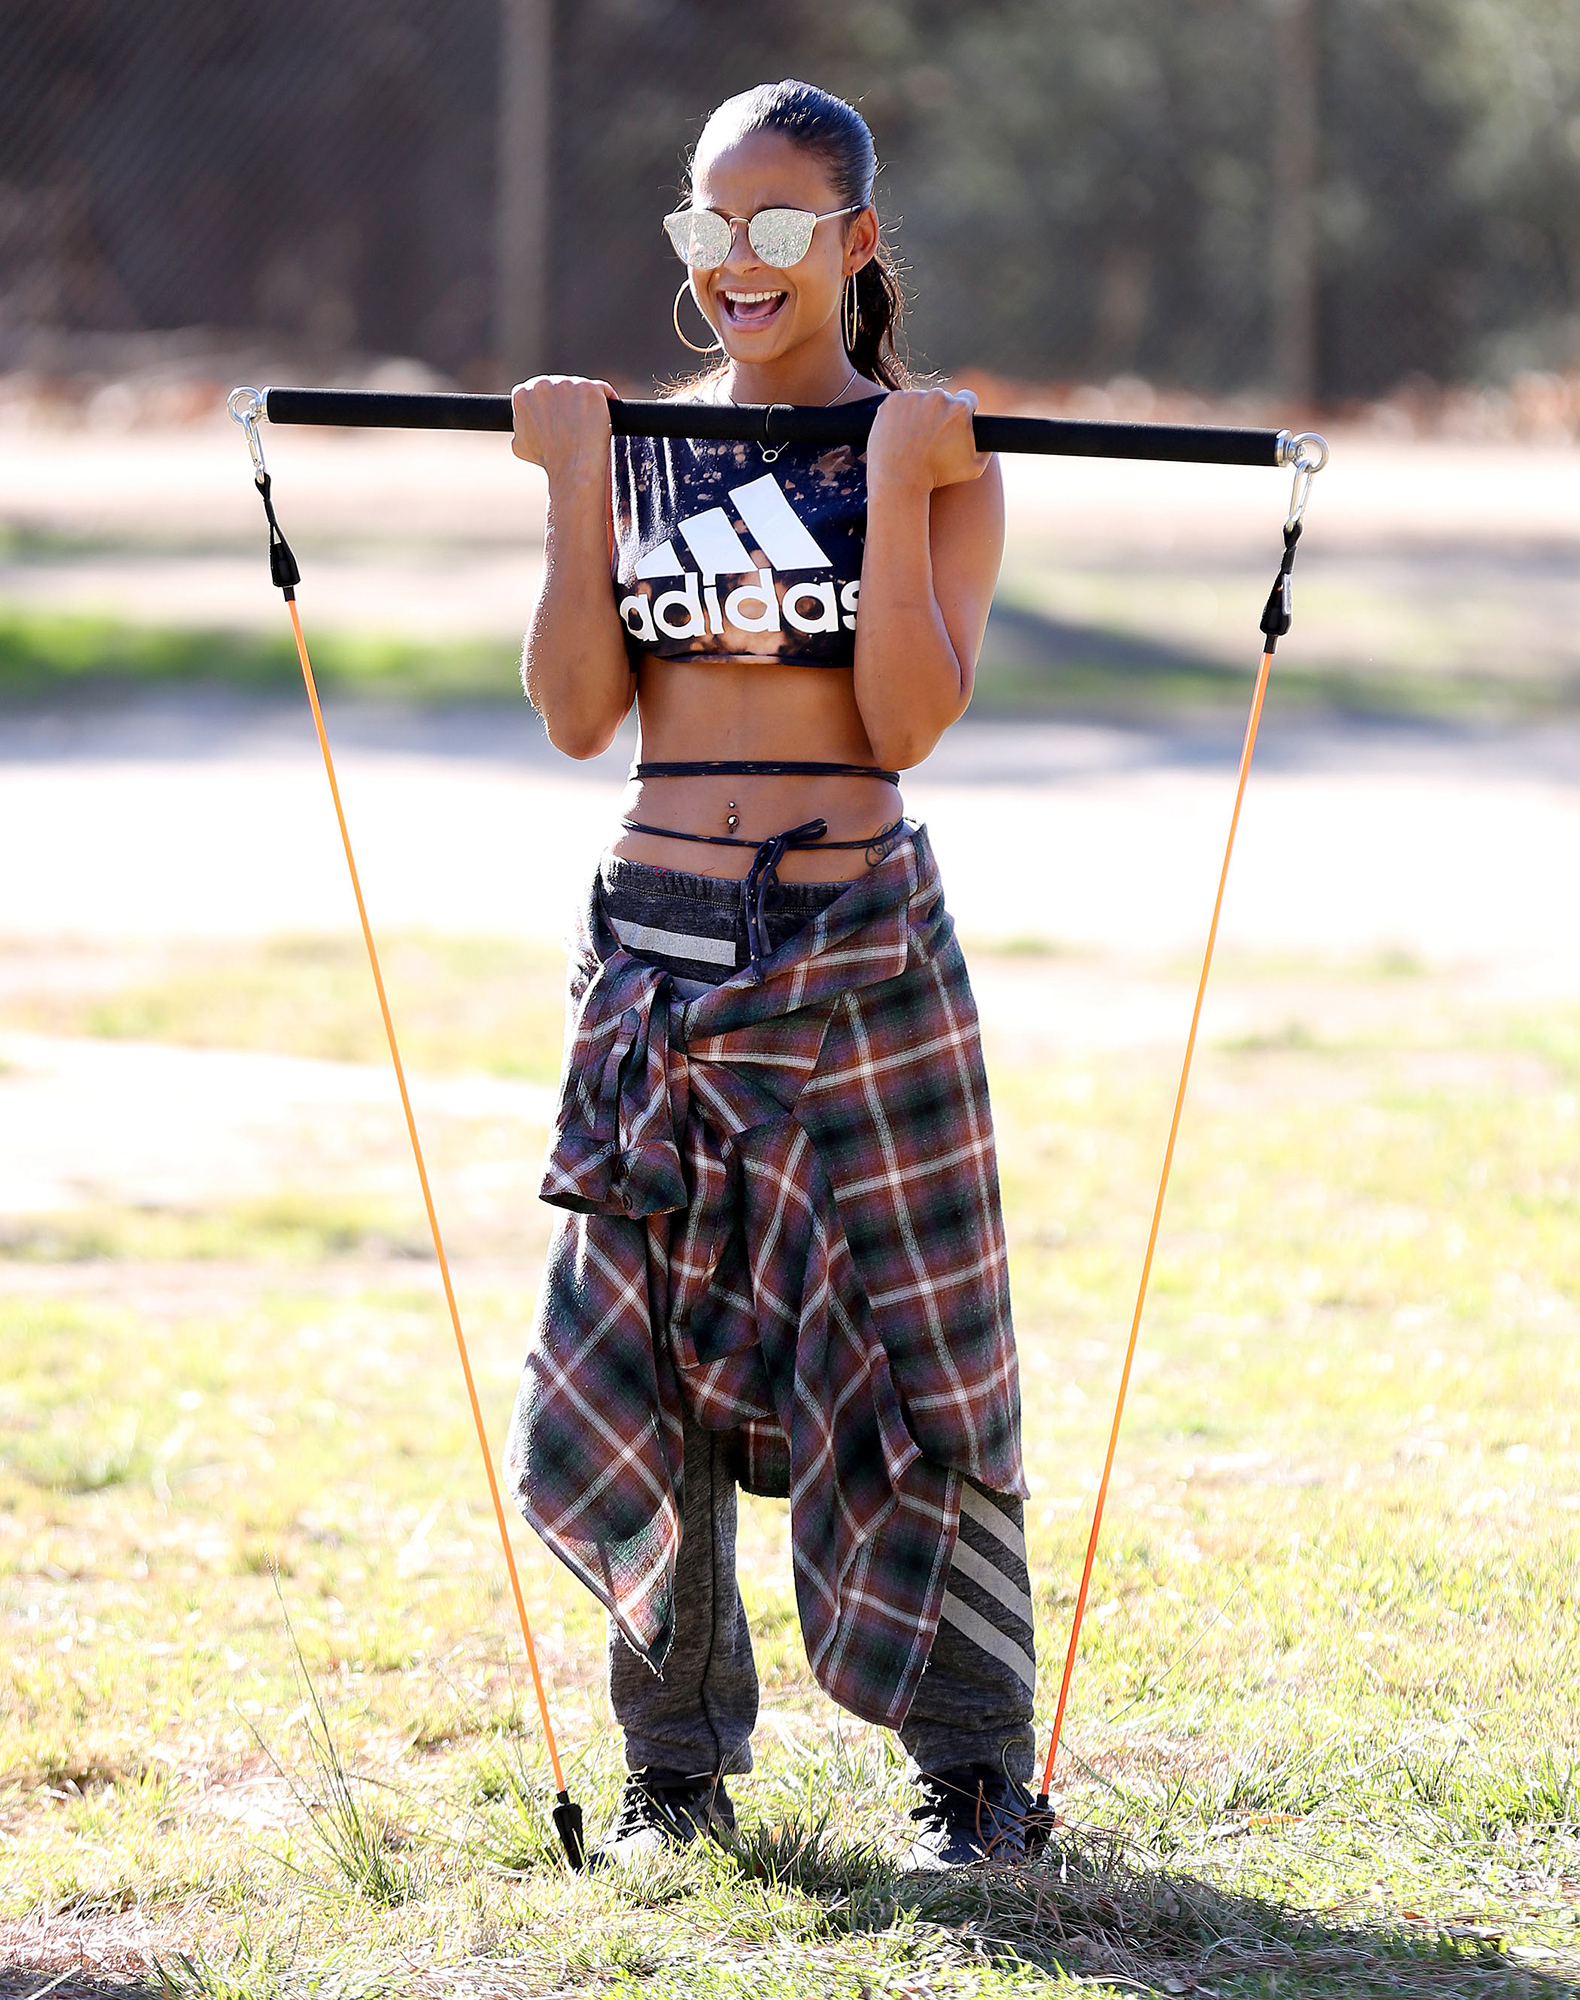 EXCLUSIVE: Christina Milian shows off her stunning figure and washboard abs in some skimpy adidas work out gear as she puts herself through her paces during a park work out in the unusually warm Los Angeles,CA weather.